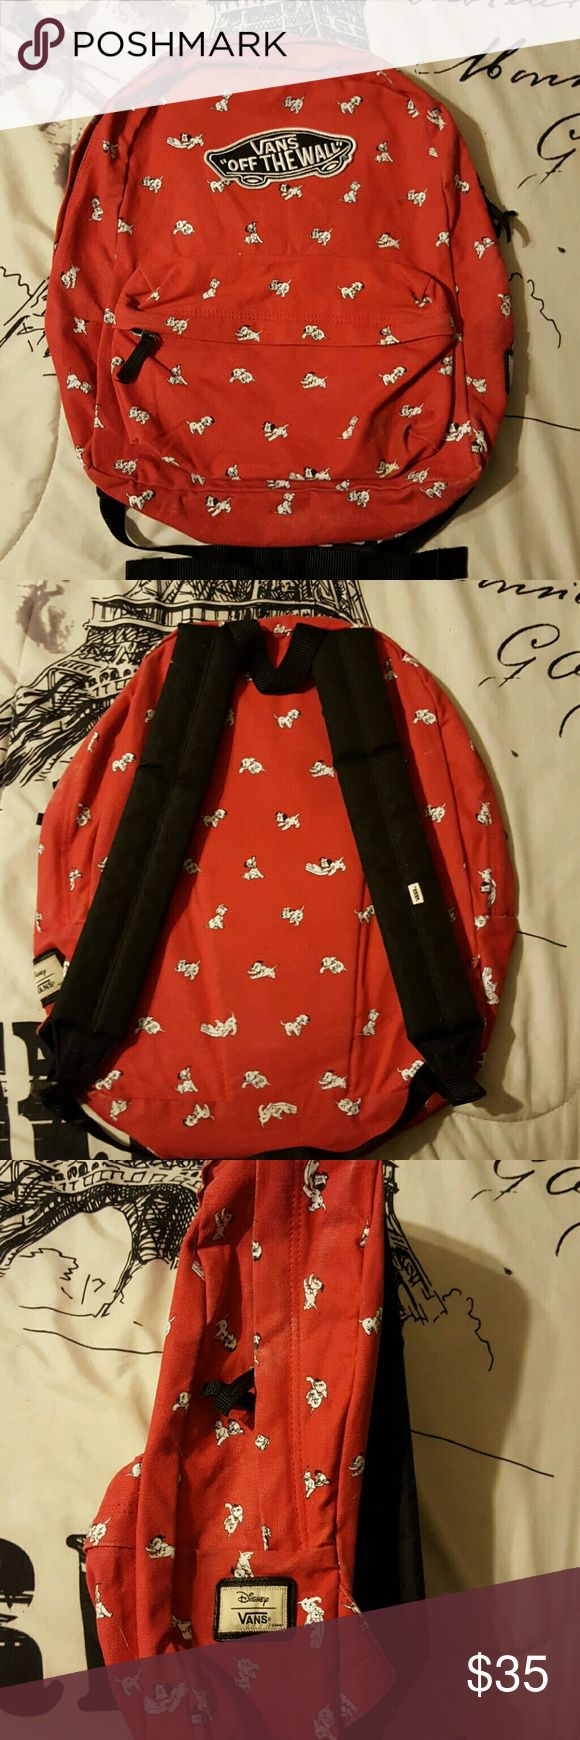 Vans dalmatian backpack Used it for a semester of college. Vans Bags Backpacks